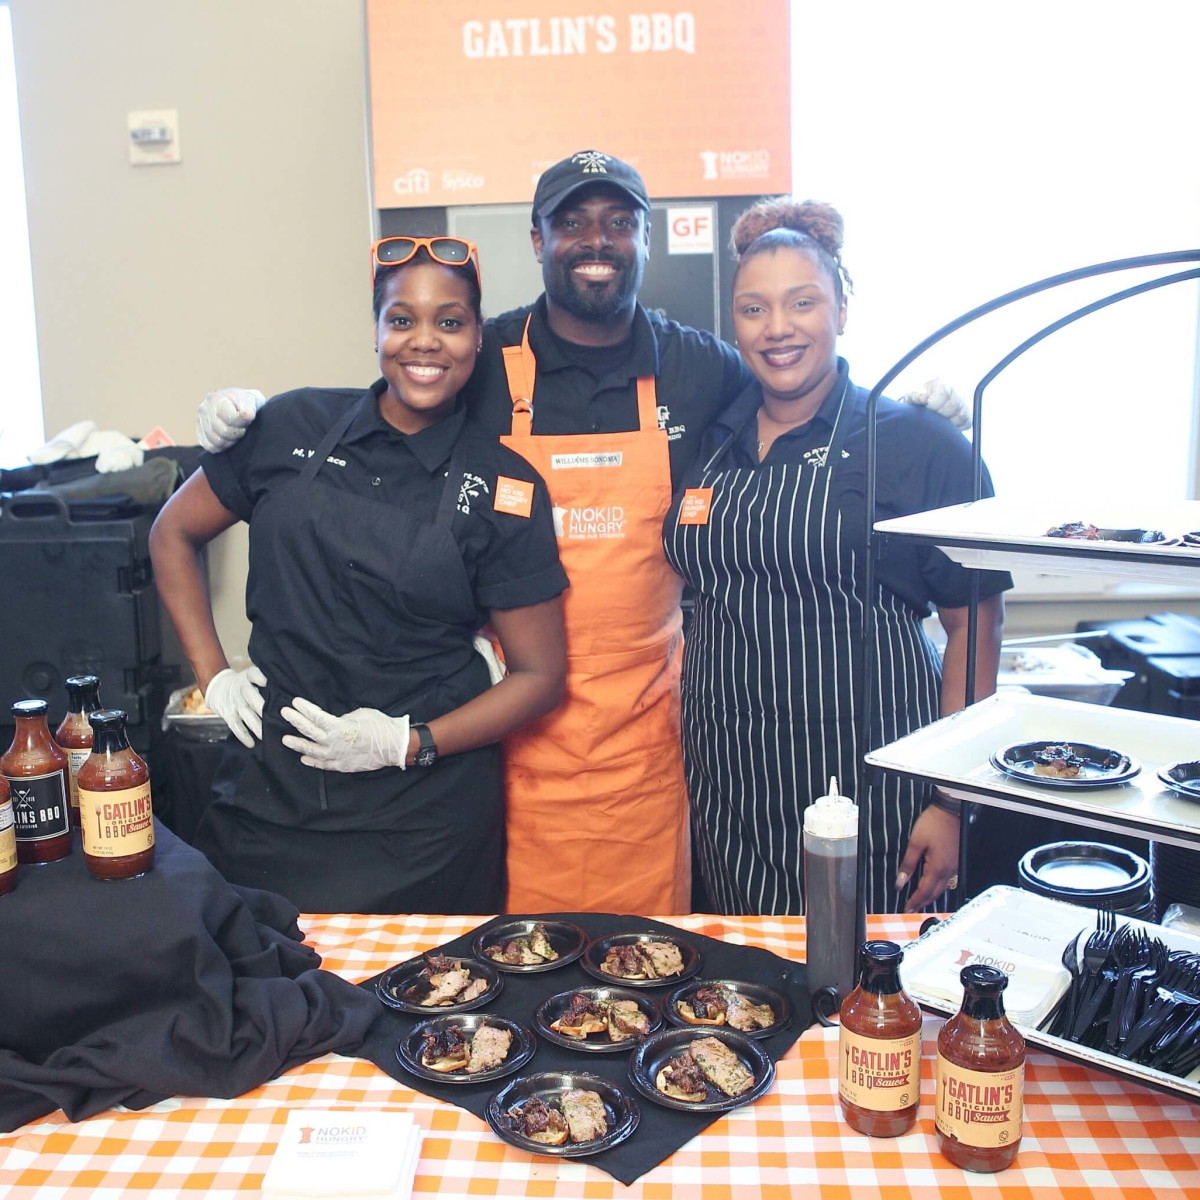 Taste of the Nation, 9/16, Greg Gatlin